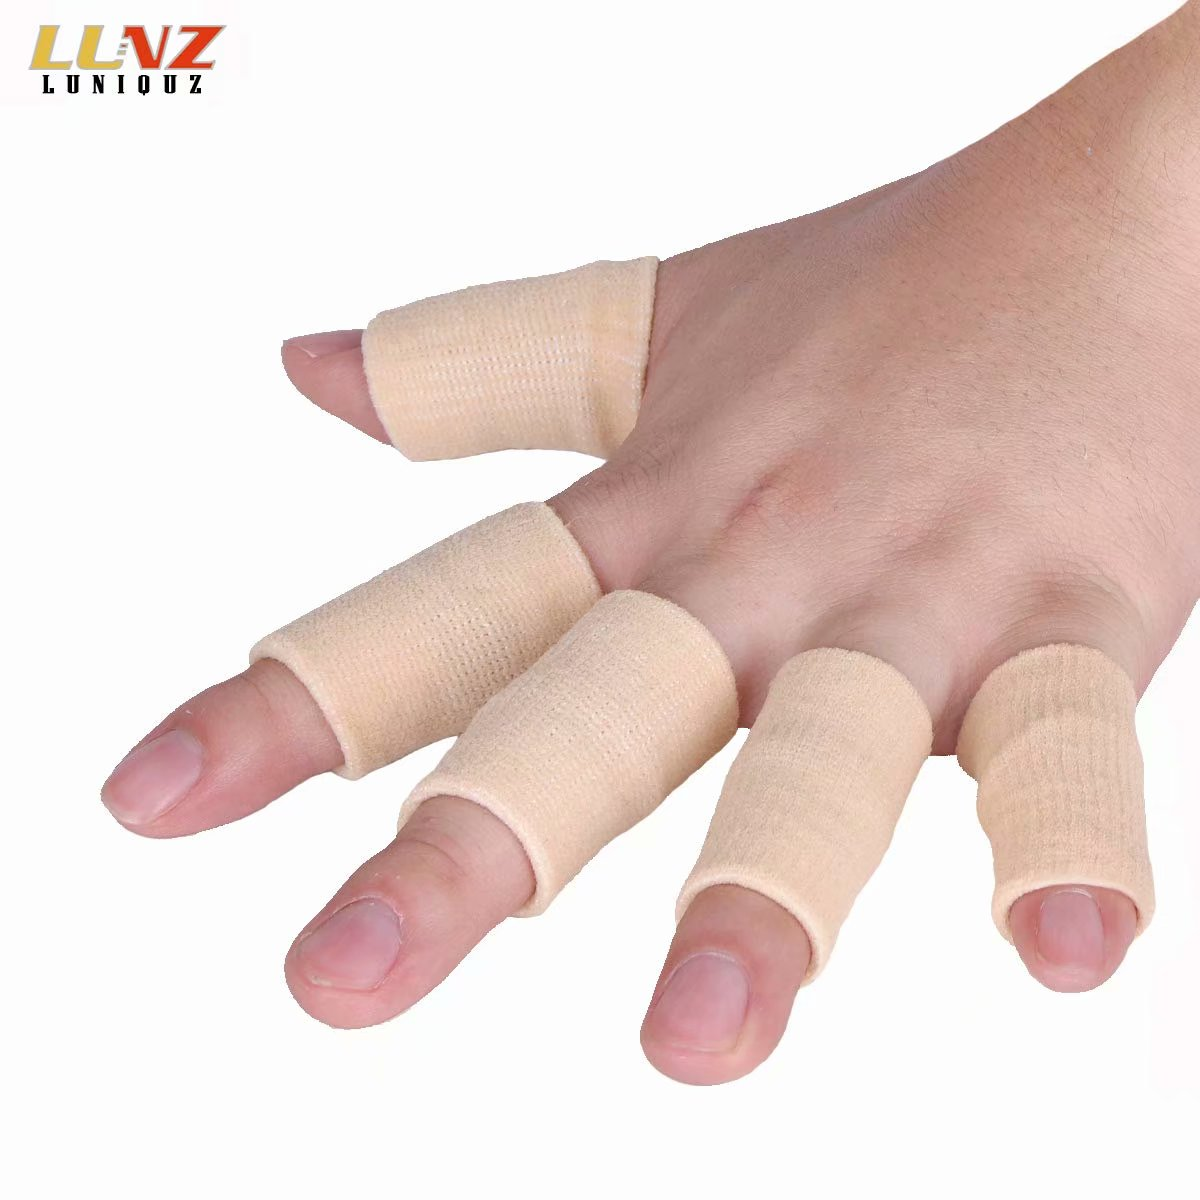 Adjustable Pain Relief /& Sleeve Protector US Details about  /5 pcs Finger Brace Support